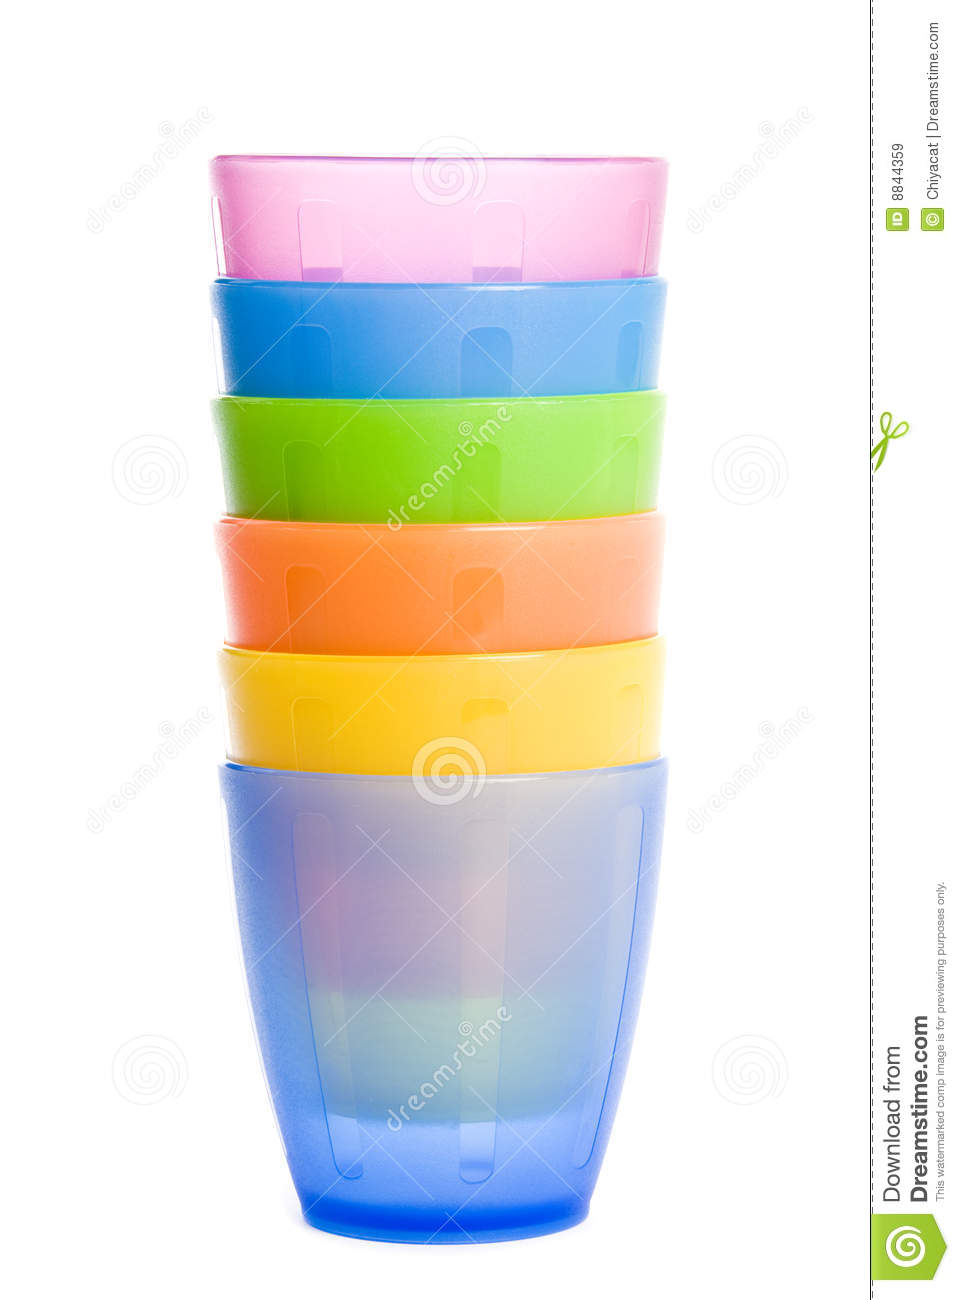 Colorful kids 39 plastic cups stock image image 8844359 - Cups and kids ...